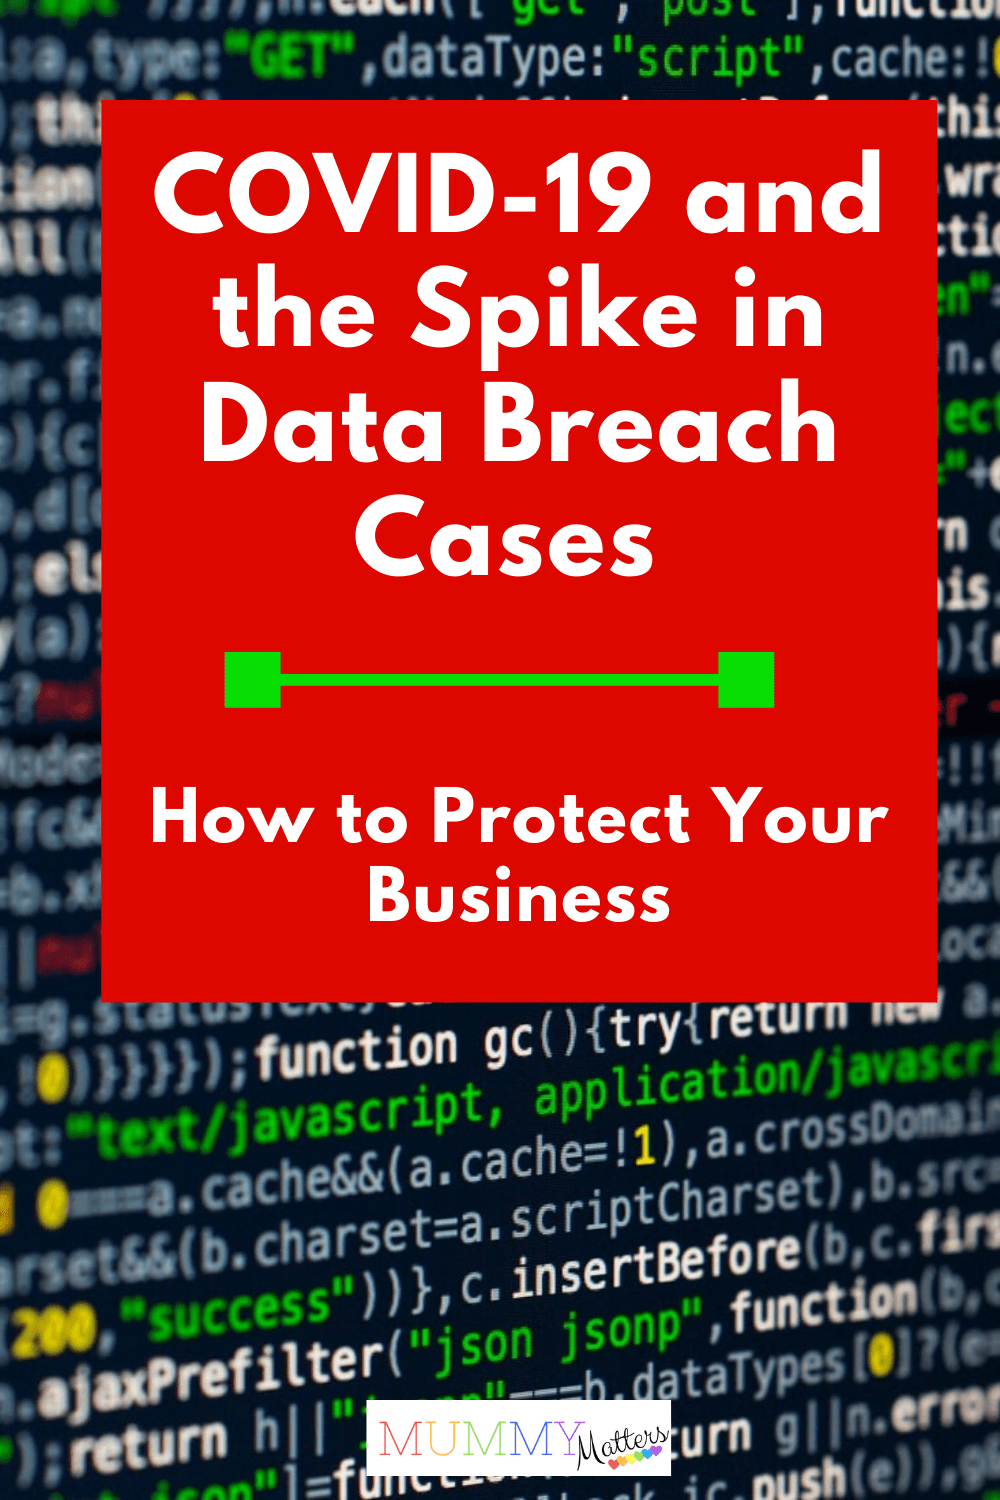 Worried your business is vulnerable to a data breach during COVID-19? Read on for tips on what your company might be at risk to and how to protect yourself.